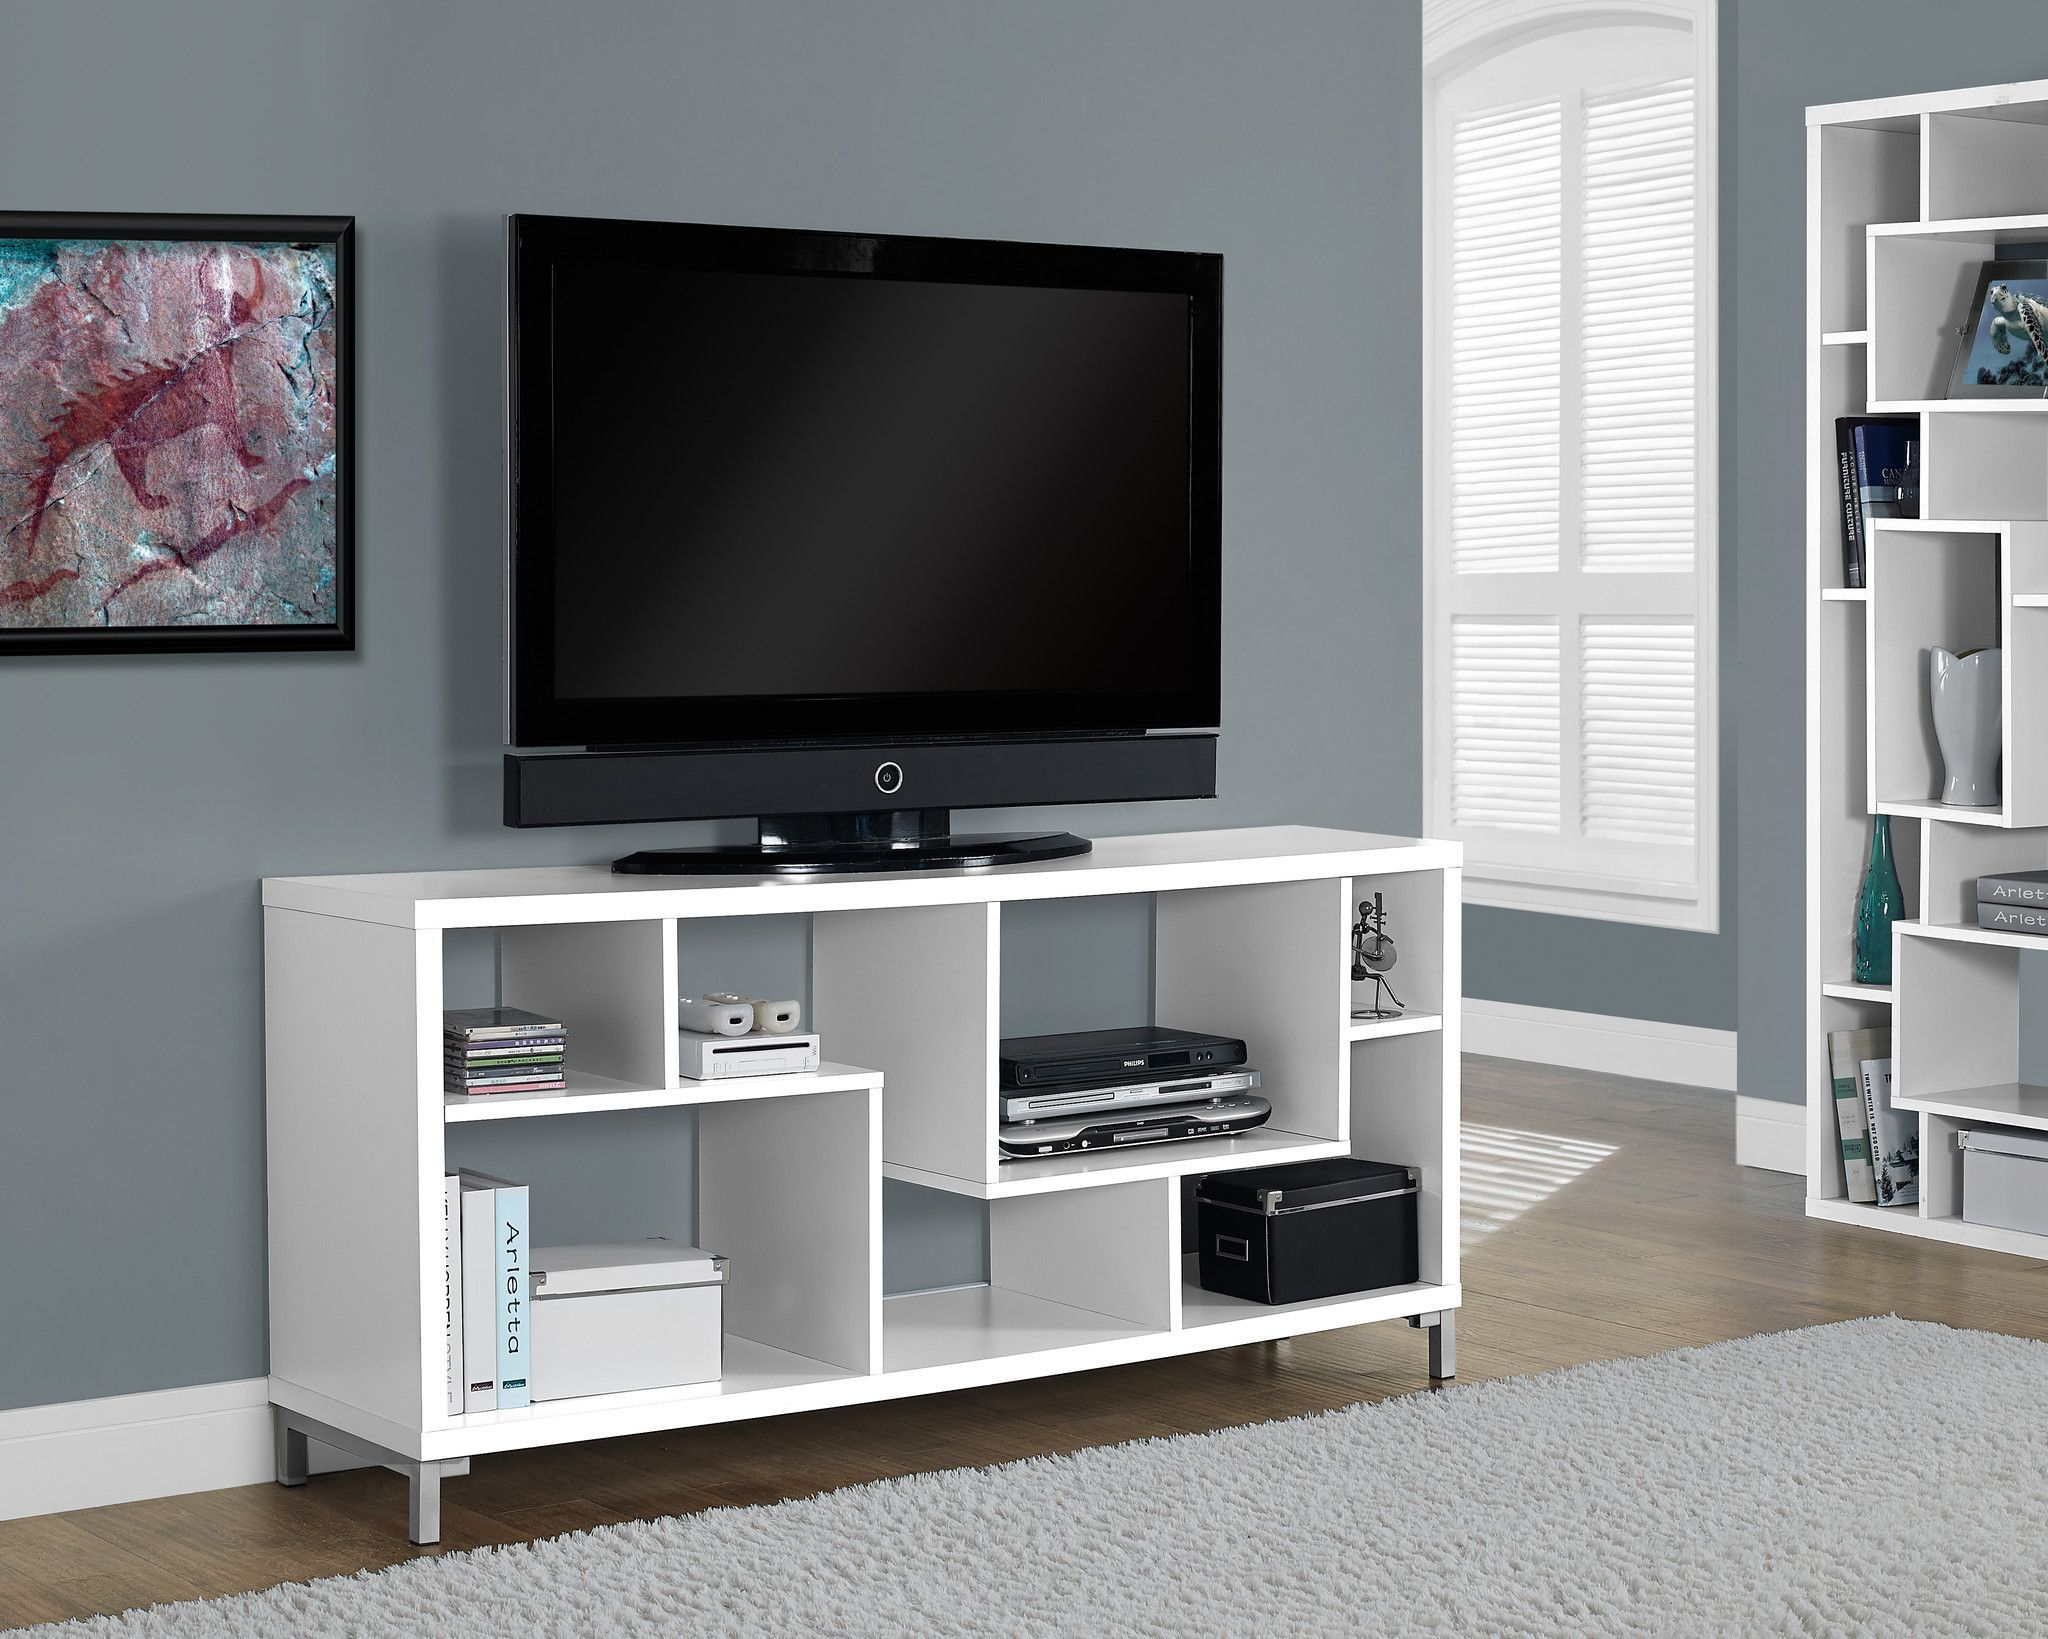 Tv Stand 60 L White Home Sweet Home In 2018 Pinterest Tvs